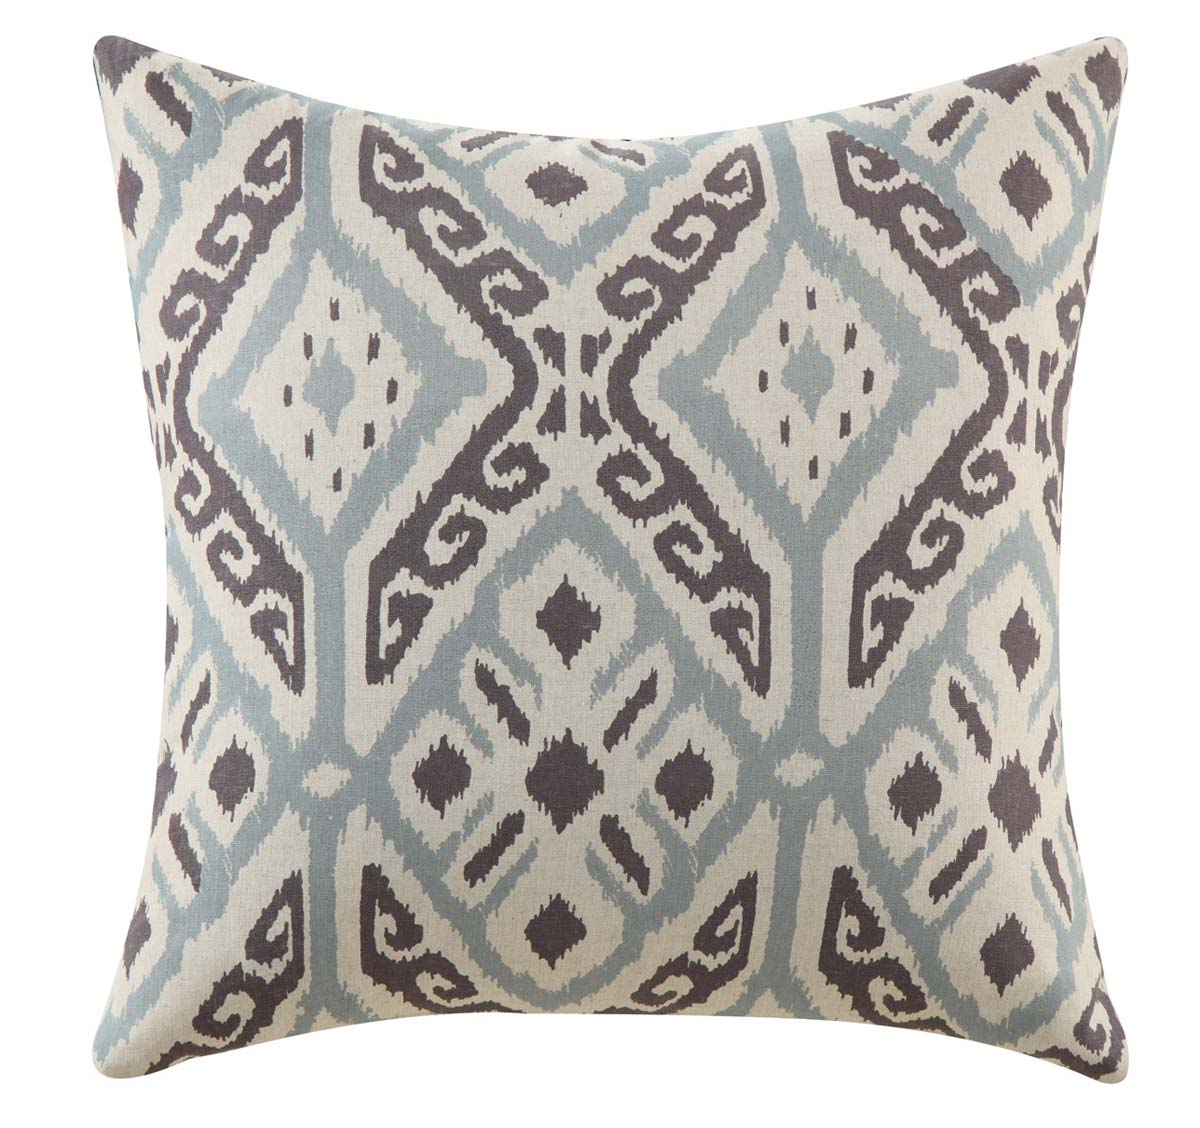 905336 Ikat Pillow